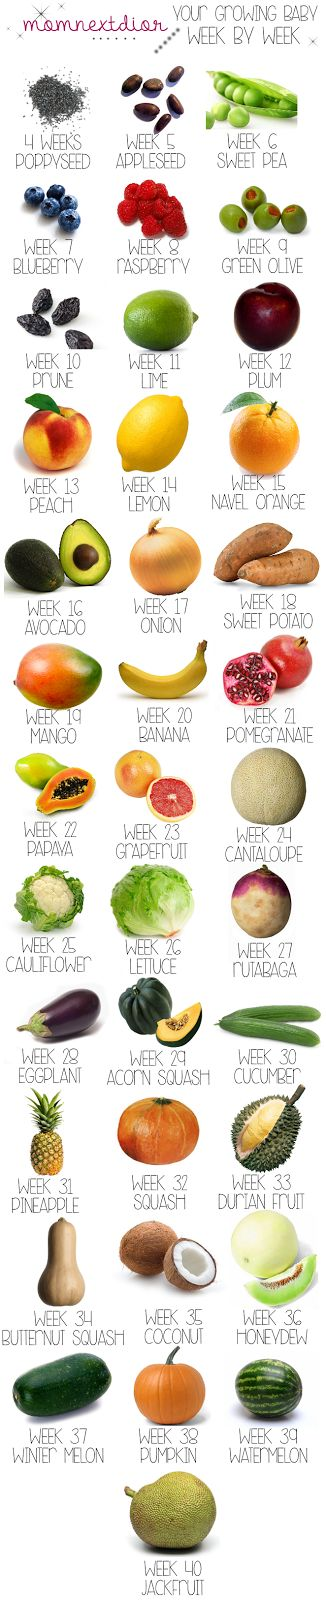 Week By Size Chart Of Growing Baby Using Fruits And Vegetables Love This Oh Weeks Fruit